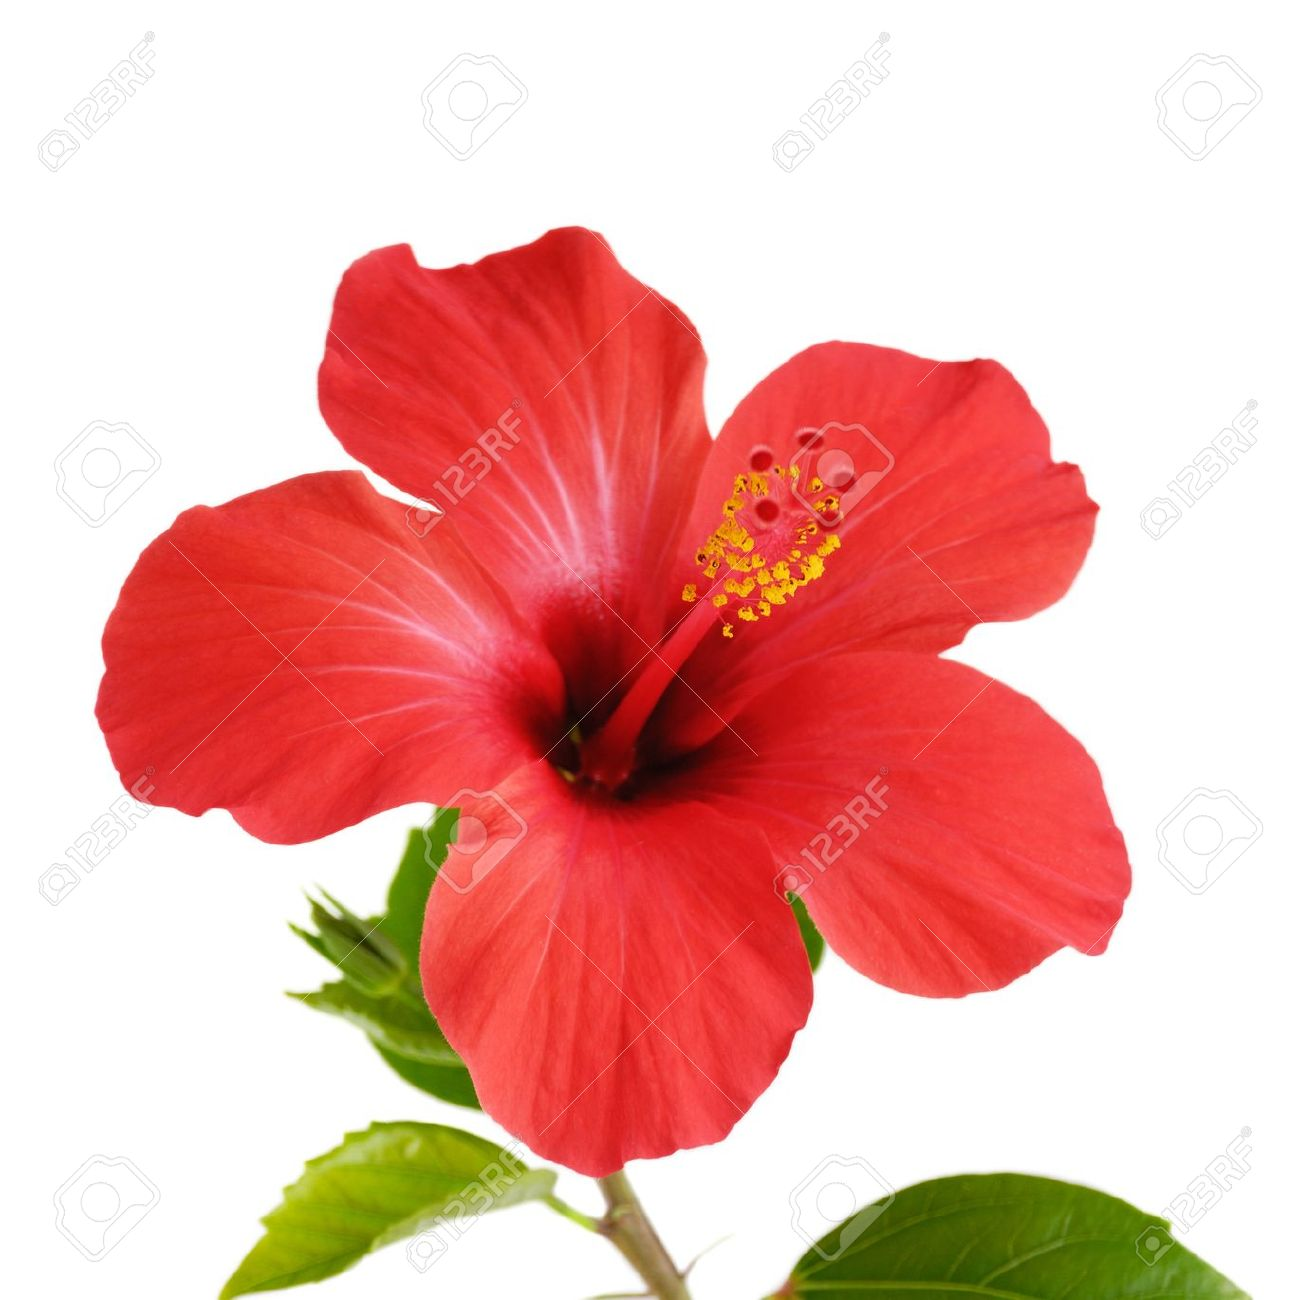 Red hibiscus flower head over white background stock photo picture red hibiscus flower head over white background stock photo 14960431 izmirmasajfo